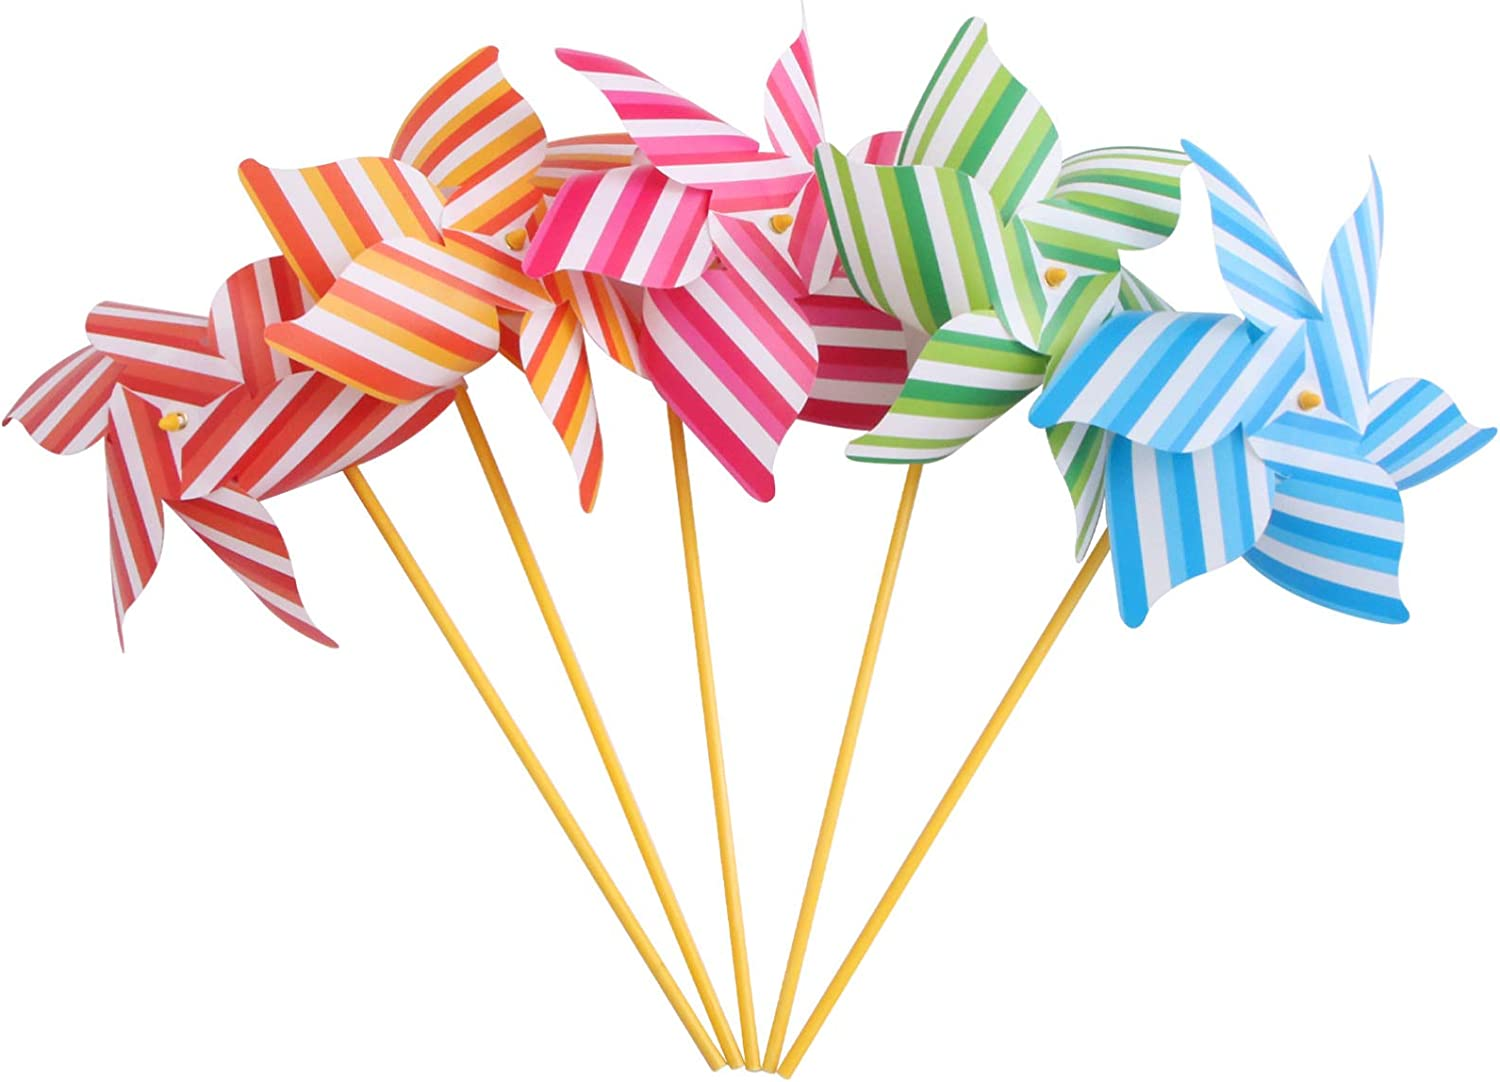 Yardwe Colorful Raleigh Mall Pinwheels Striped Stakes Garden Free shipping anywhere in the nation Decorative 30CM